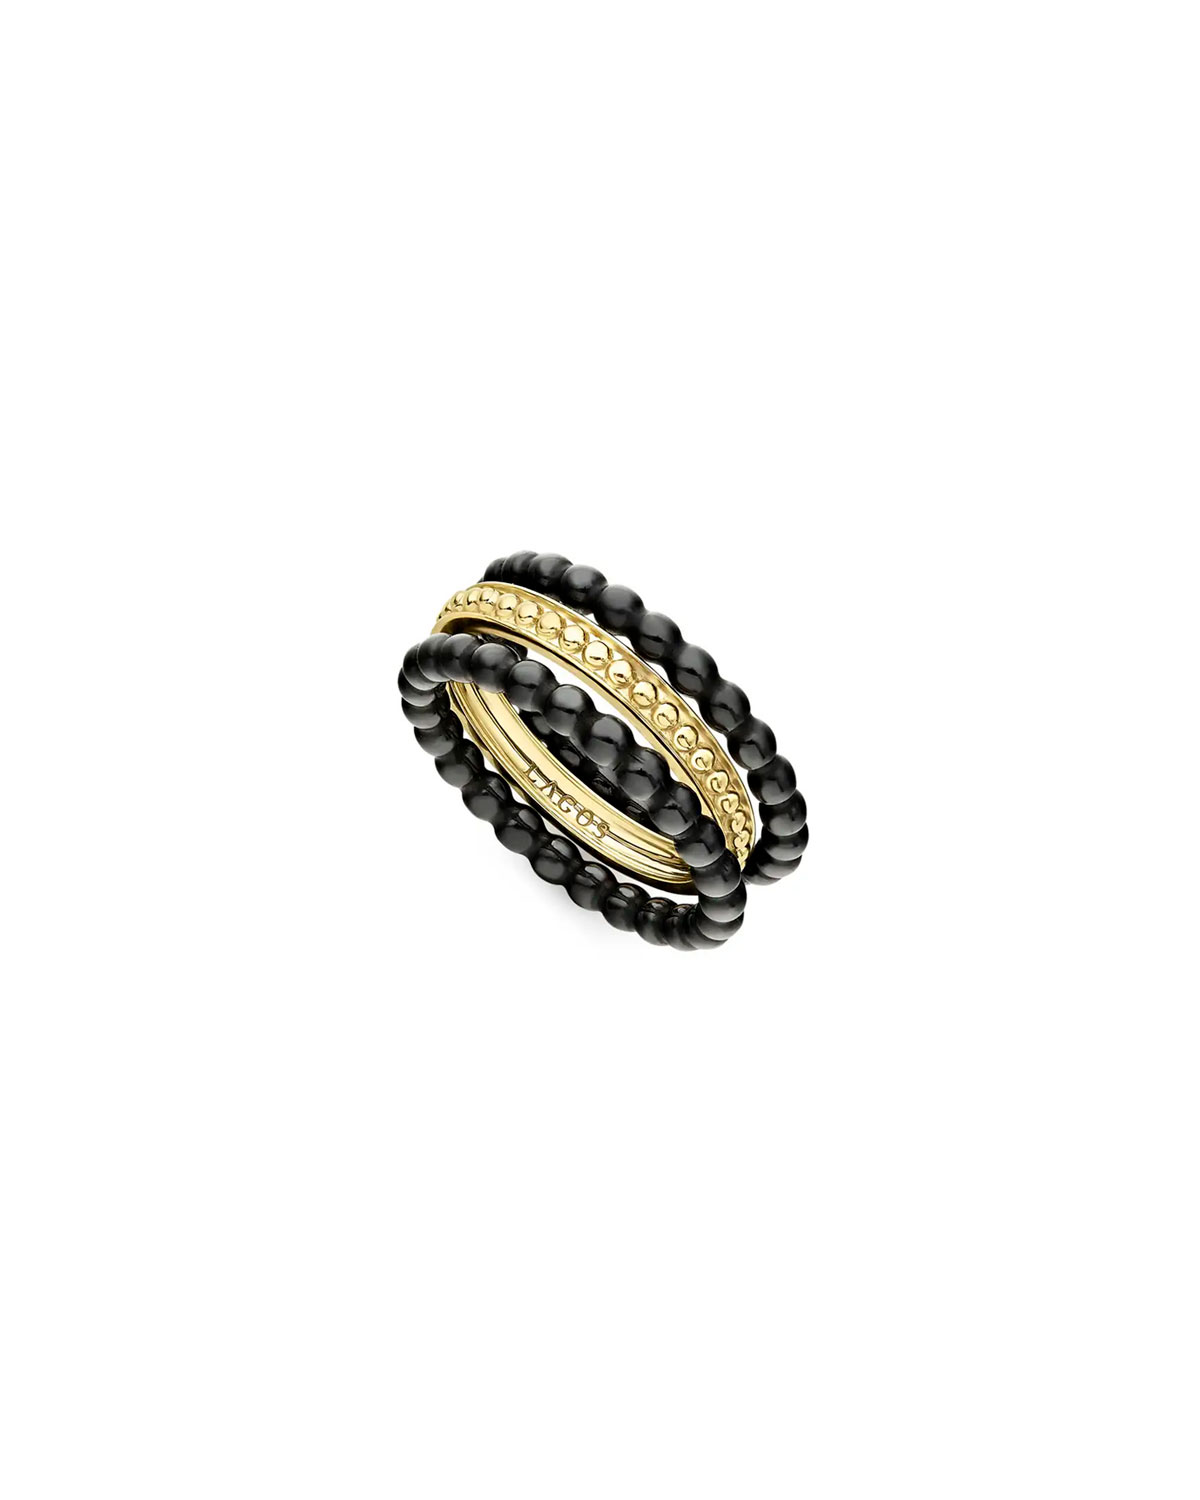 Lagos 18k Gold & Black Caviar Rings, Set of 3, Size 7